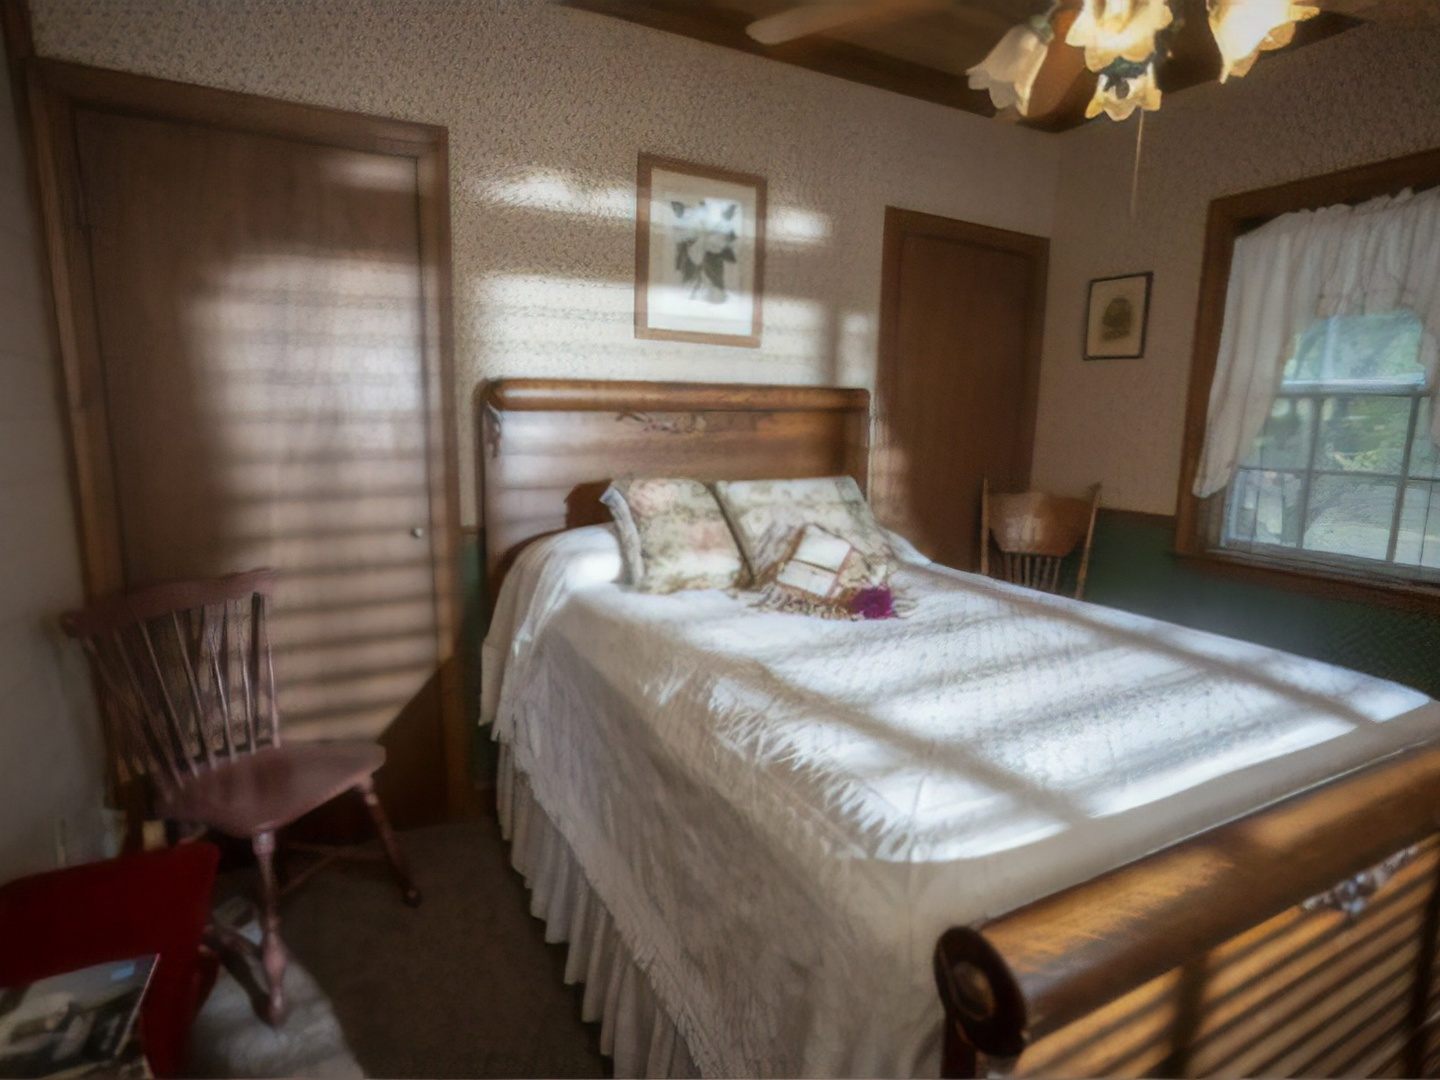 A bedroom with a bed and desk in a room at Country Charm Bed and Breakfast.